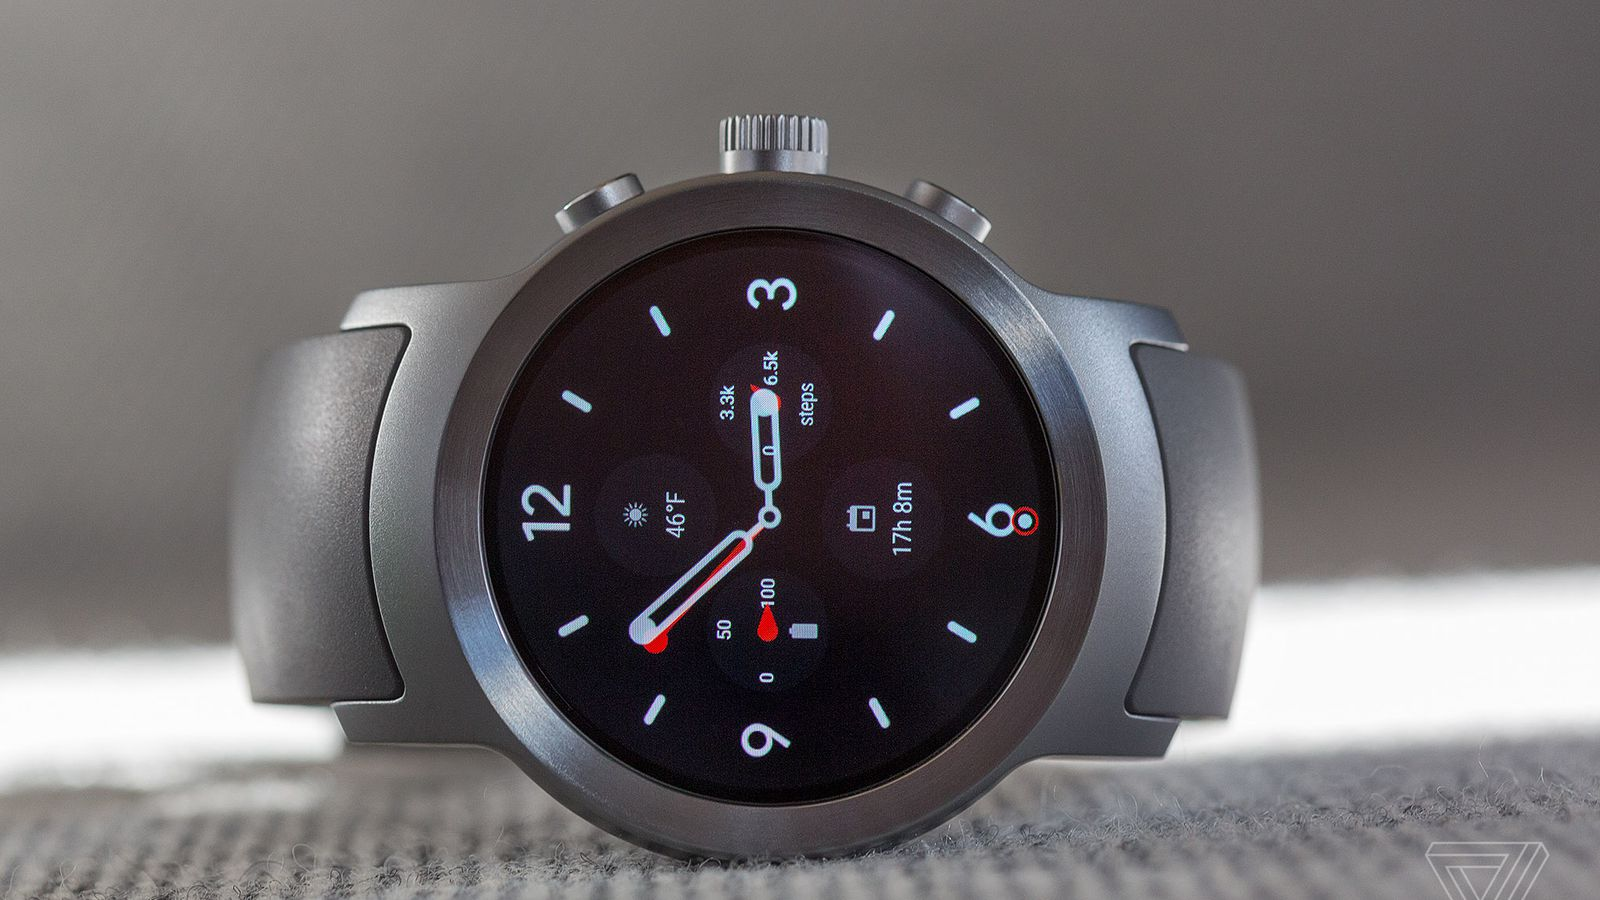 theverge.com - Google is delaying a wider release of Android Wear 2.0 to fix a software bug